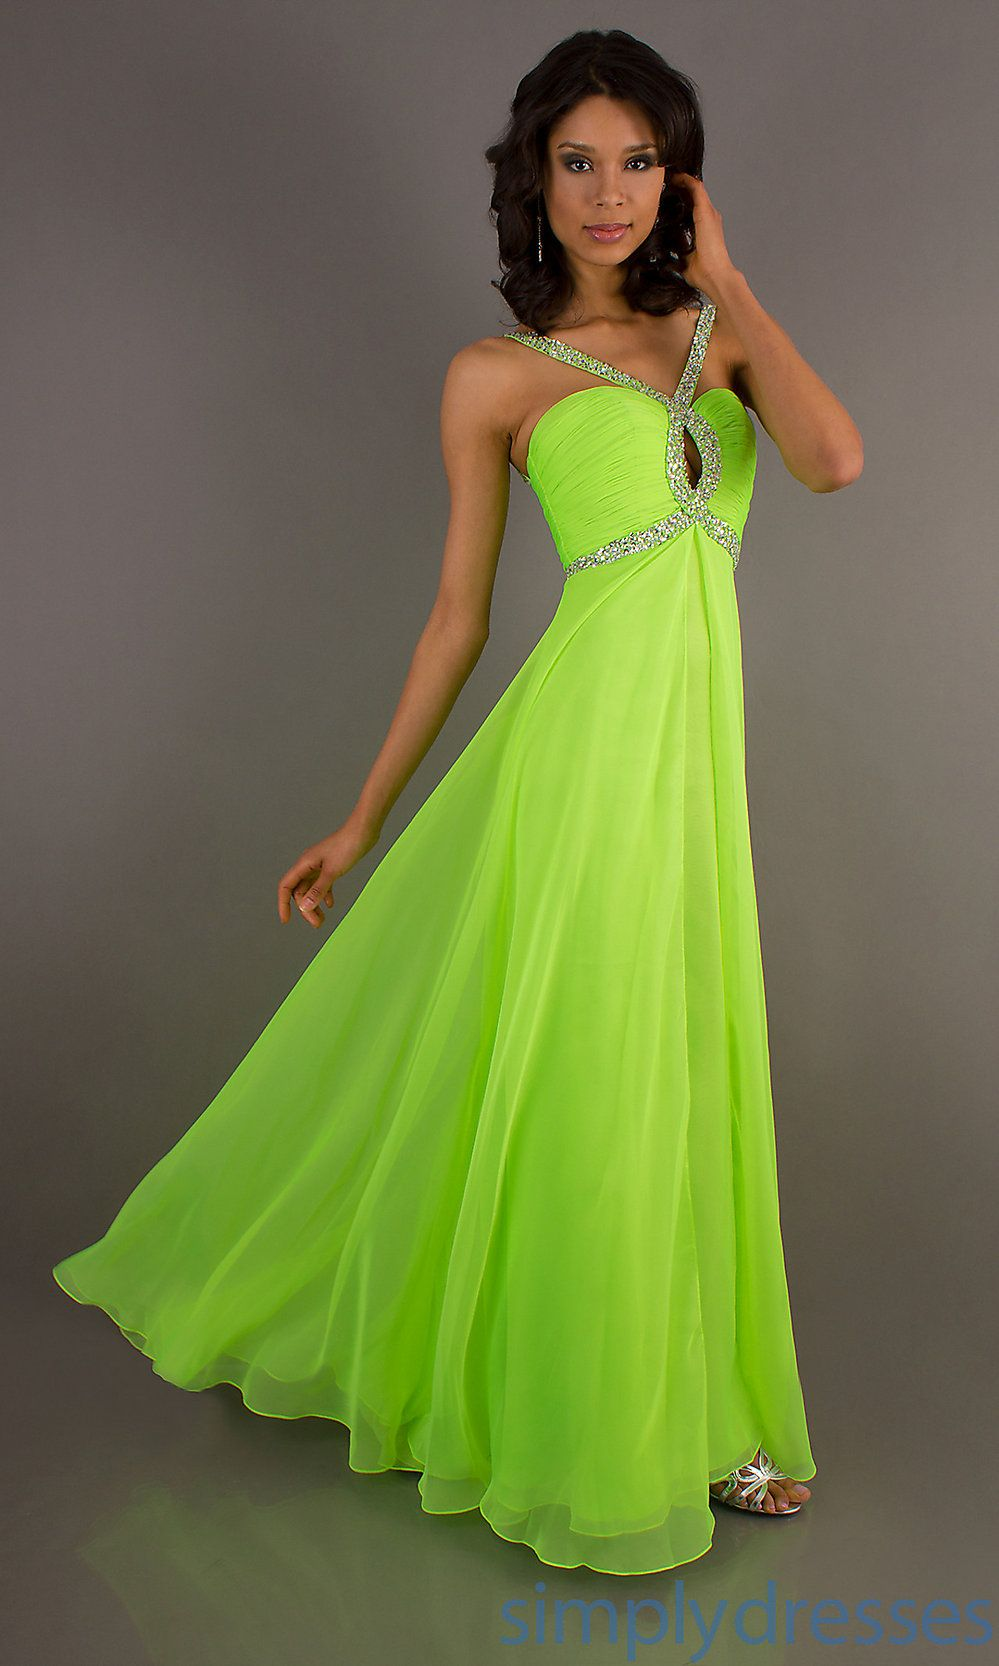 Neon Green Prom Dresses Coat Pant Michelle Pinterest